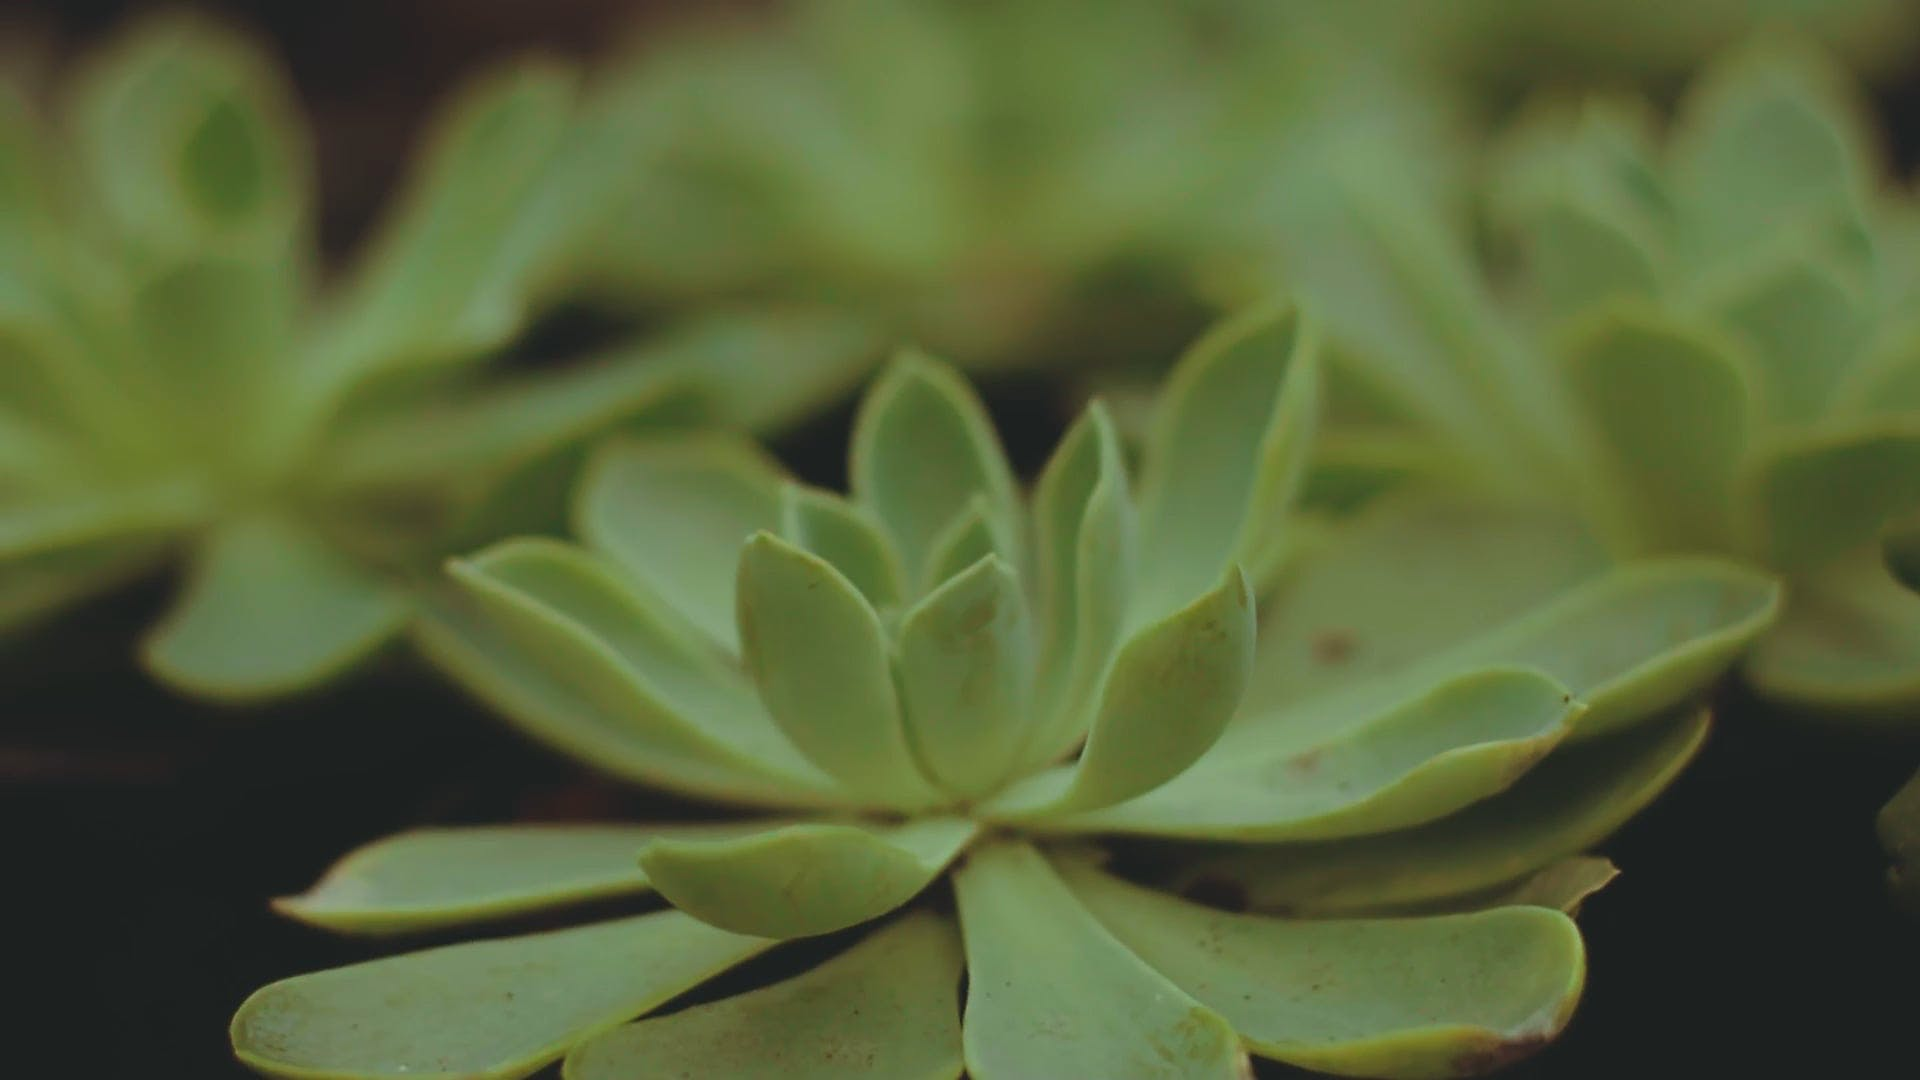 Succulent Plants In Close View